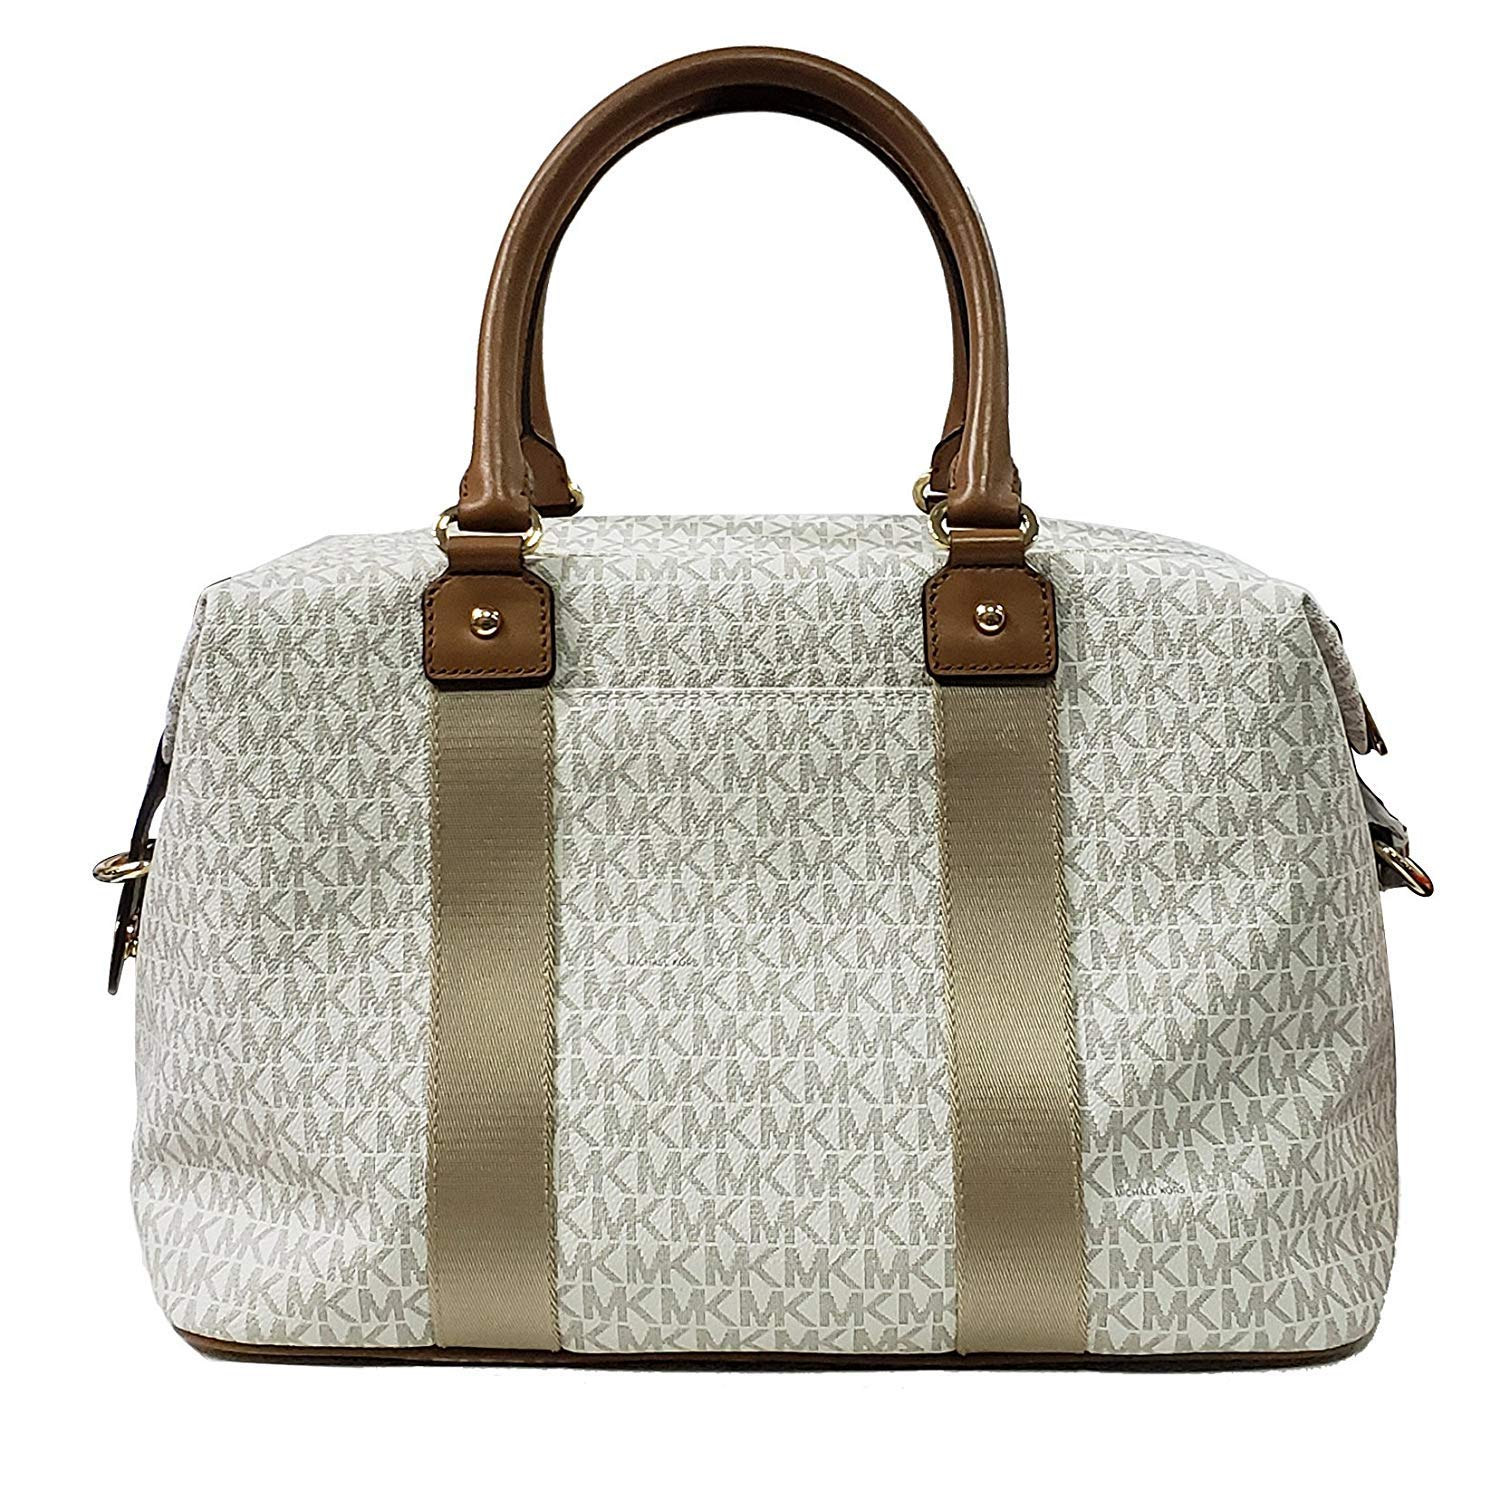 7abd1f6950b78b Amazon.com: Michael Kors LG large travel bag weekender purse MK vanilla  acorn brown: Clothing